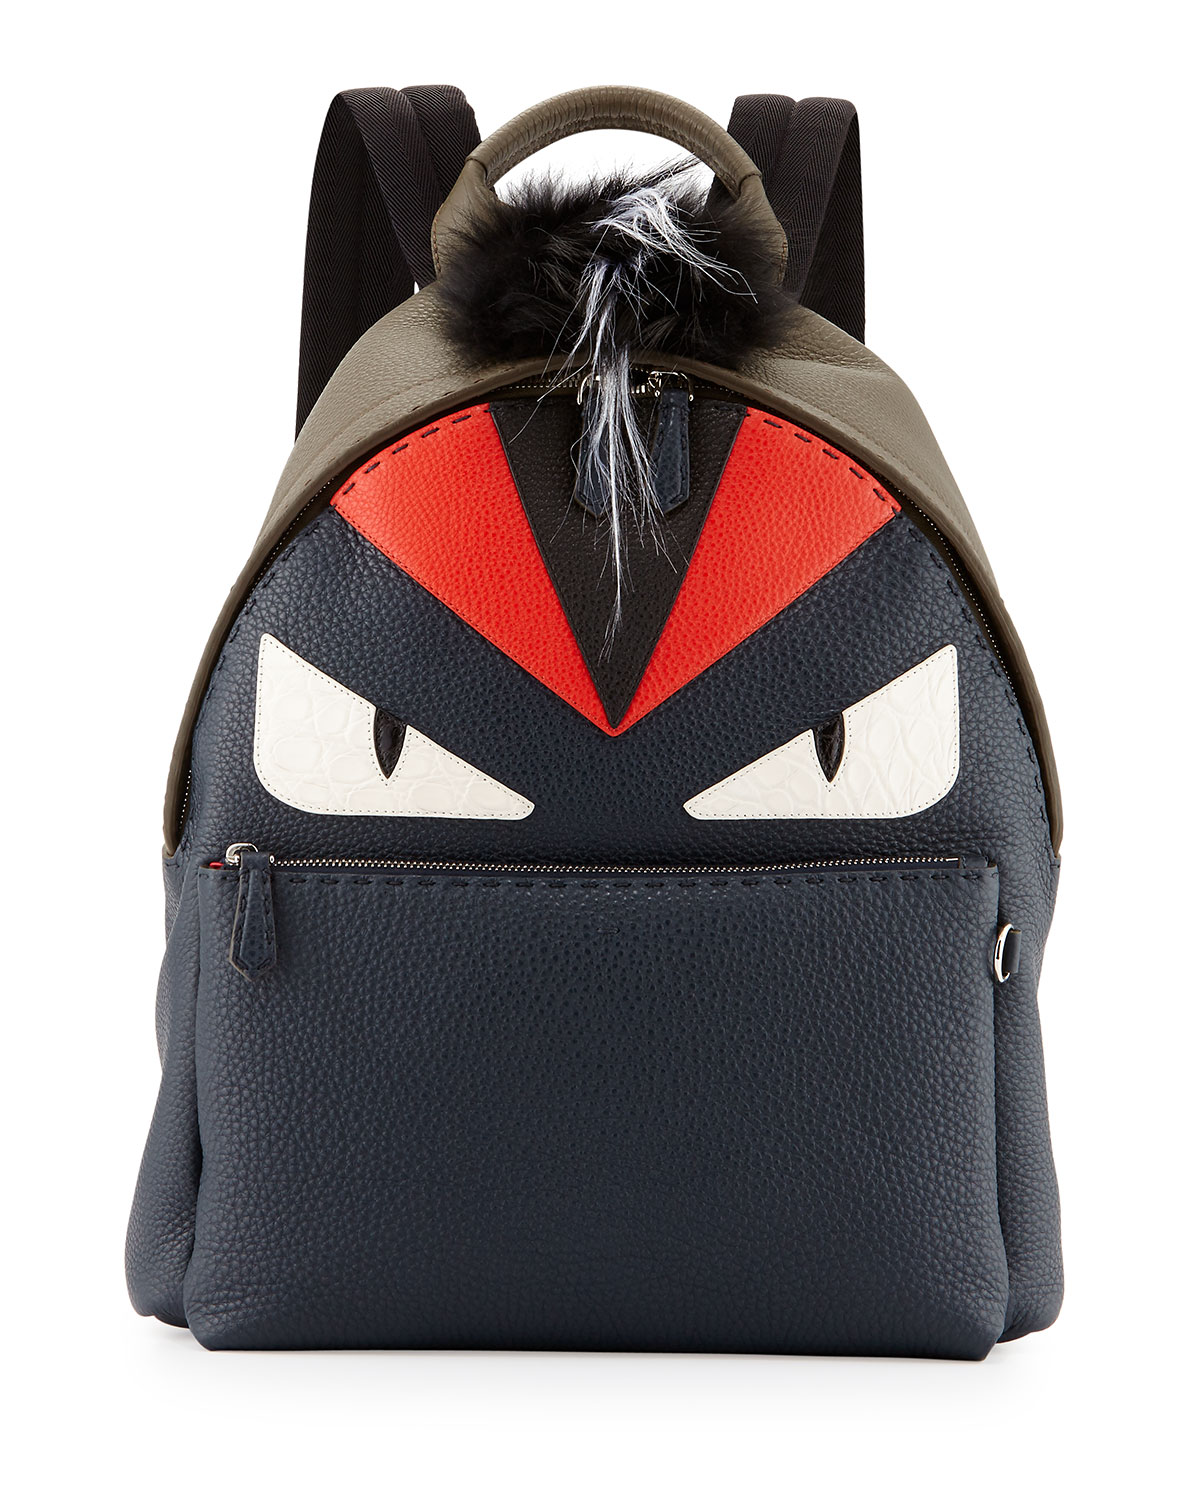 Fendi Monster Backpack with Fur Crest  dd556f01f1faa